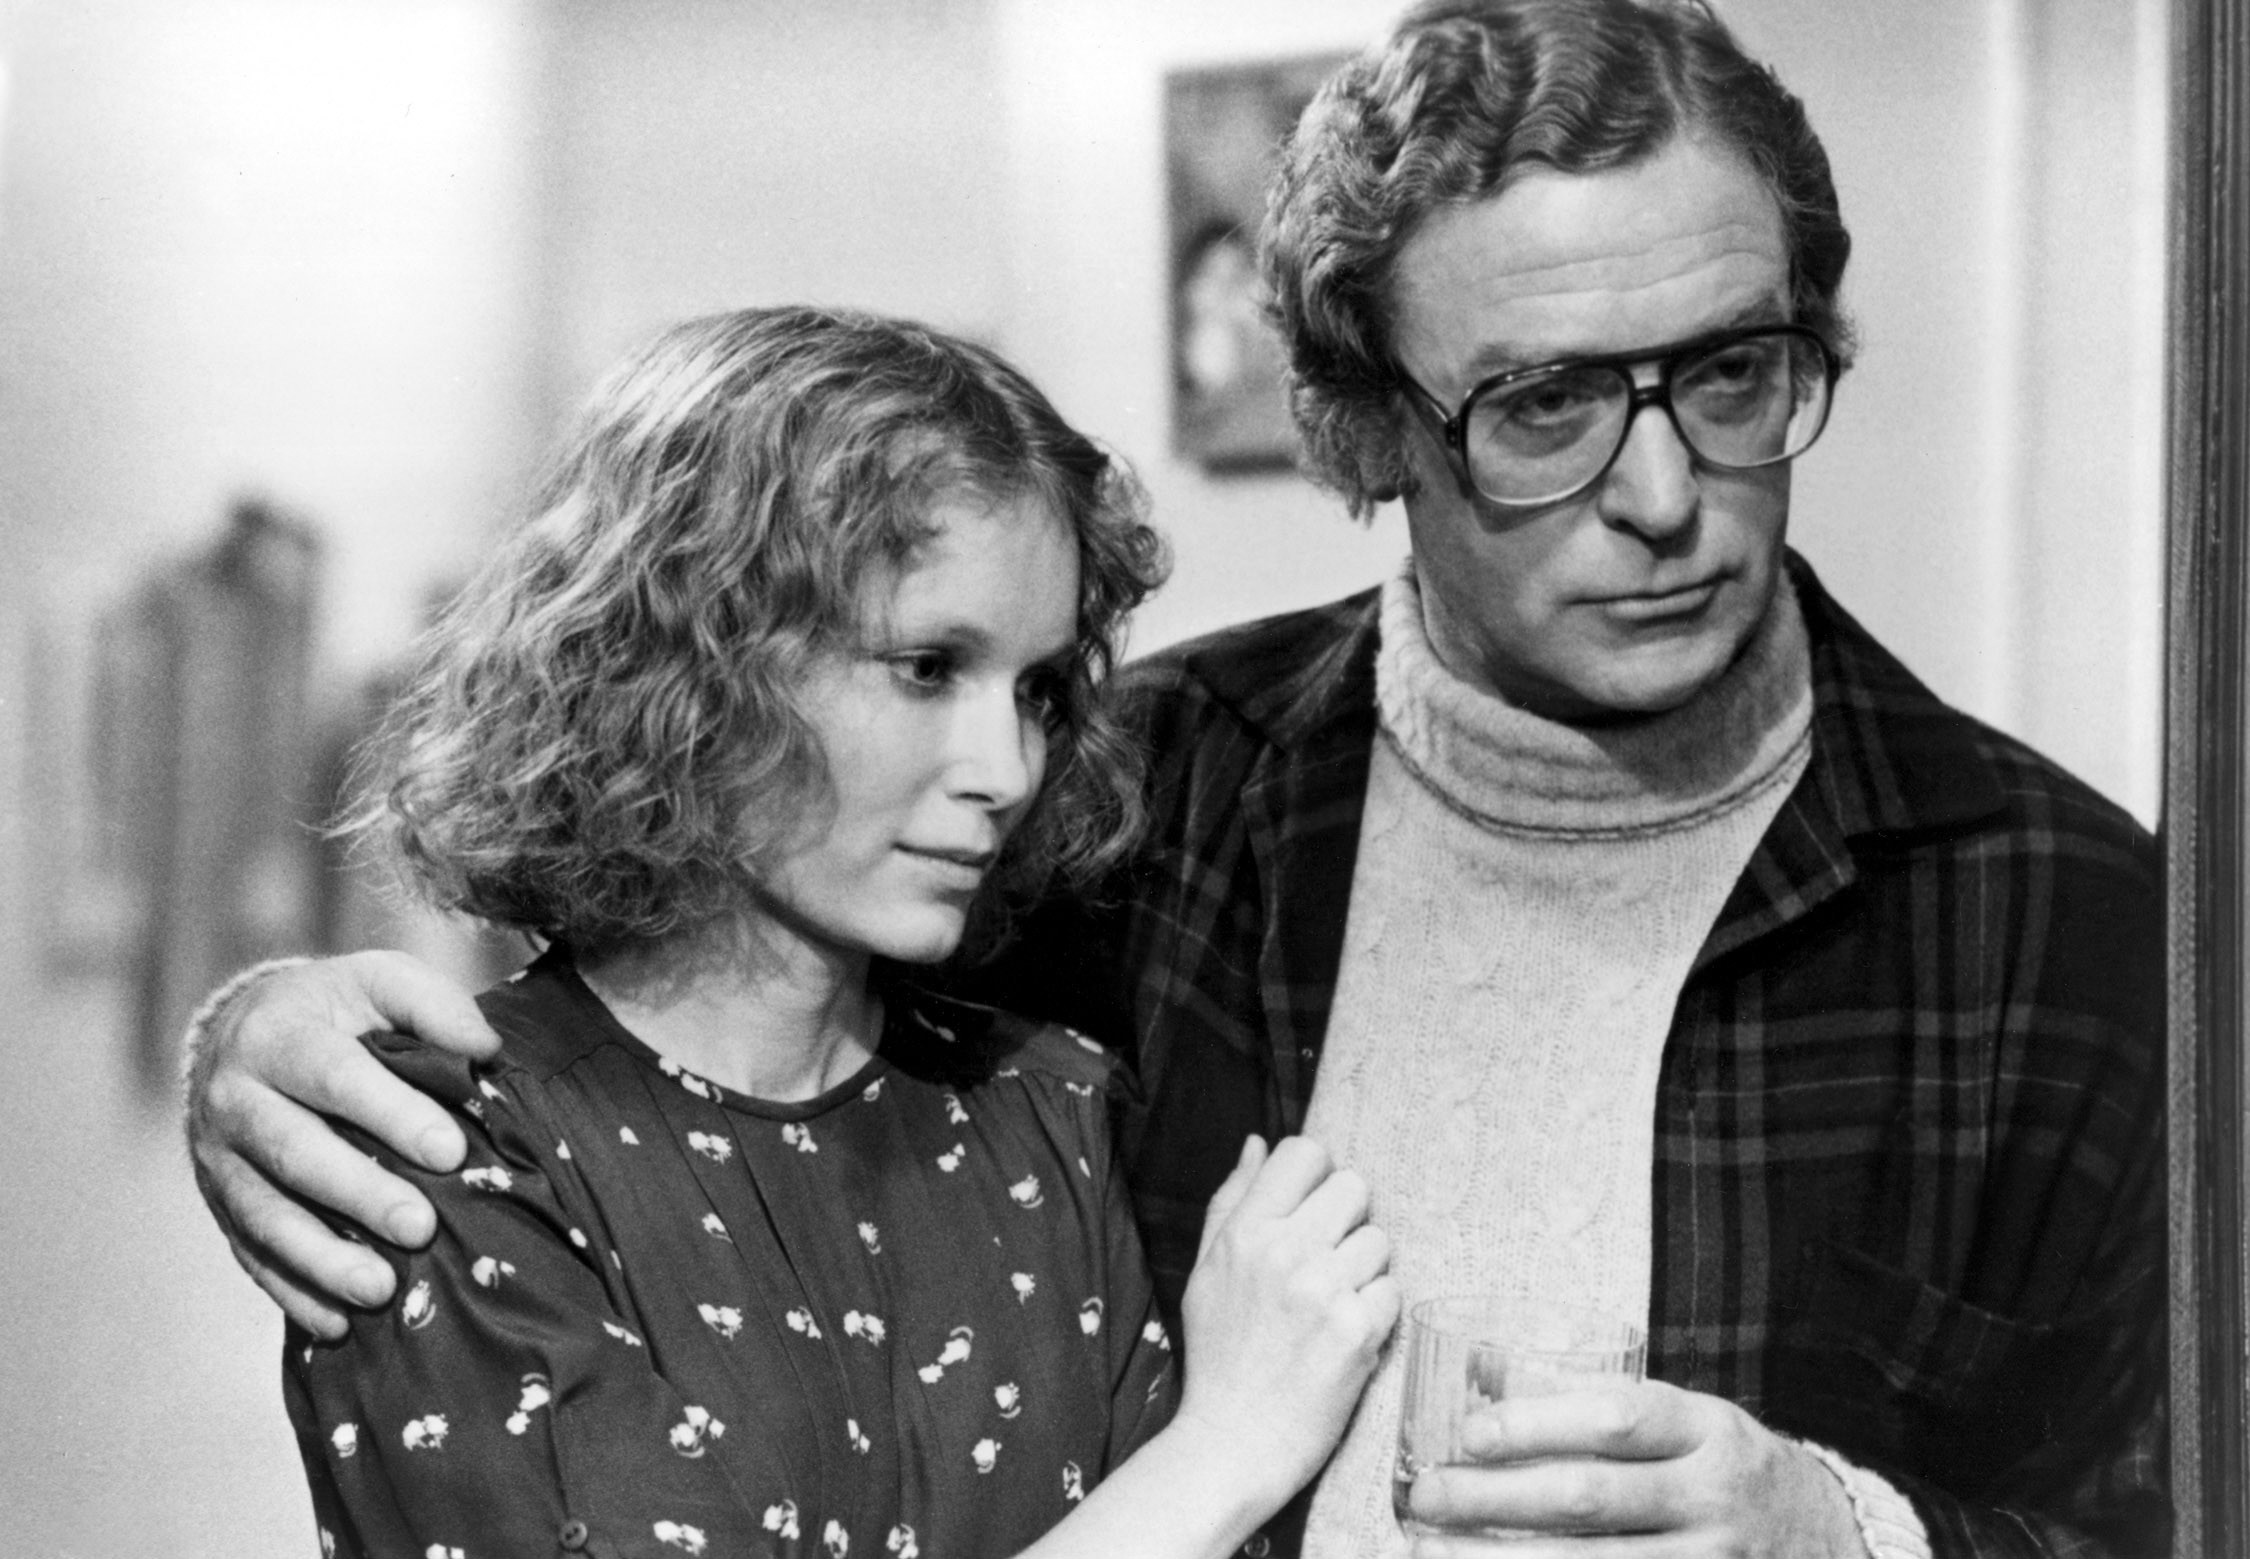 hannah and her sisters - the woody allen pages